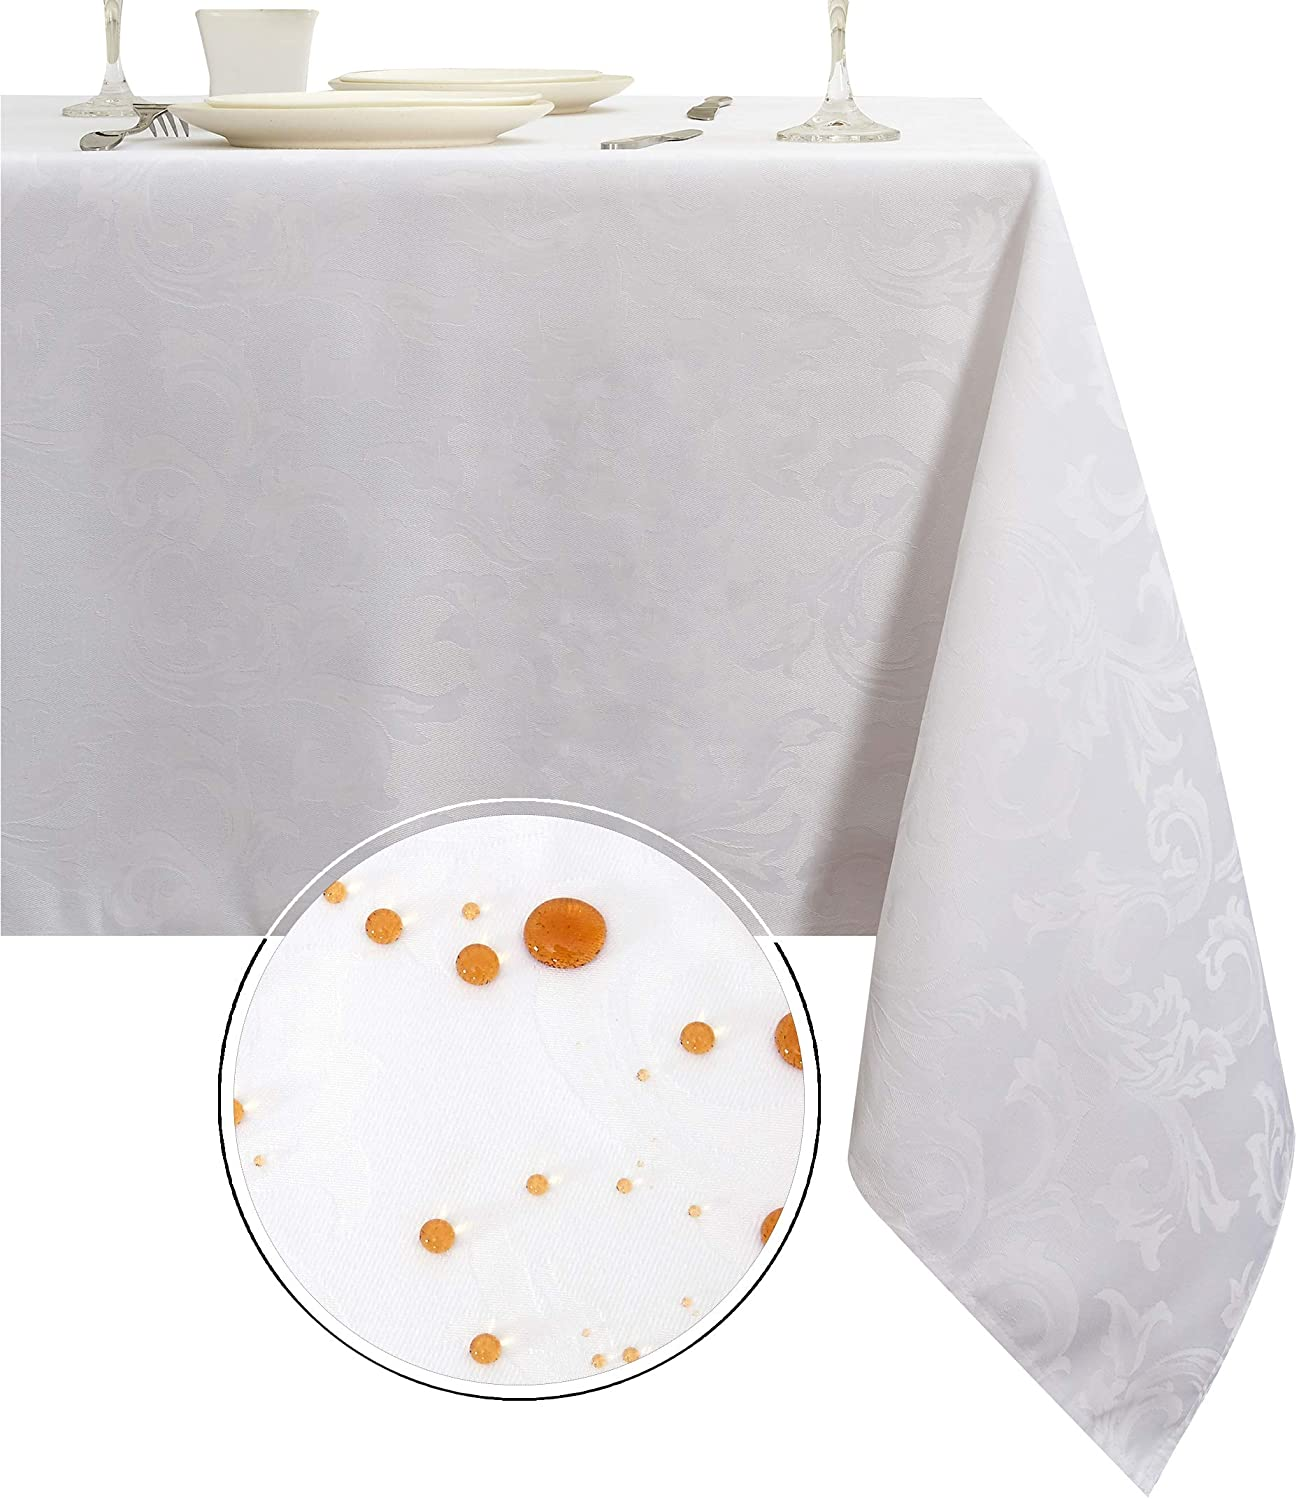 Obstal 210GSM Rectangle Table Cloth, Water Resistance Microfiber Tablecloth, Decorative Fabric Table Cover for Outdoor and Indoor Use (White,60 x 102 Inch)